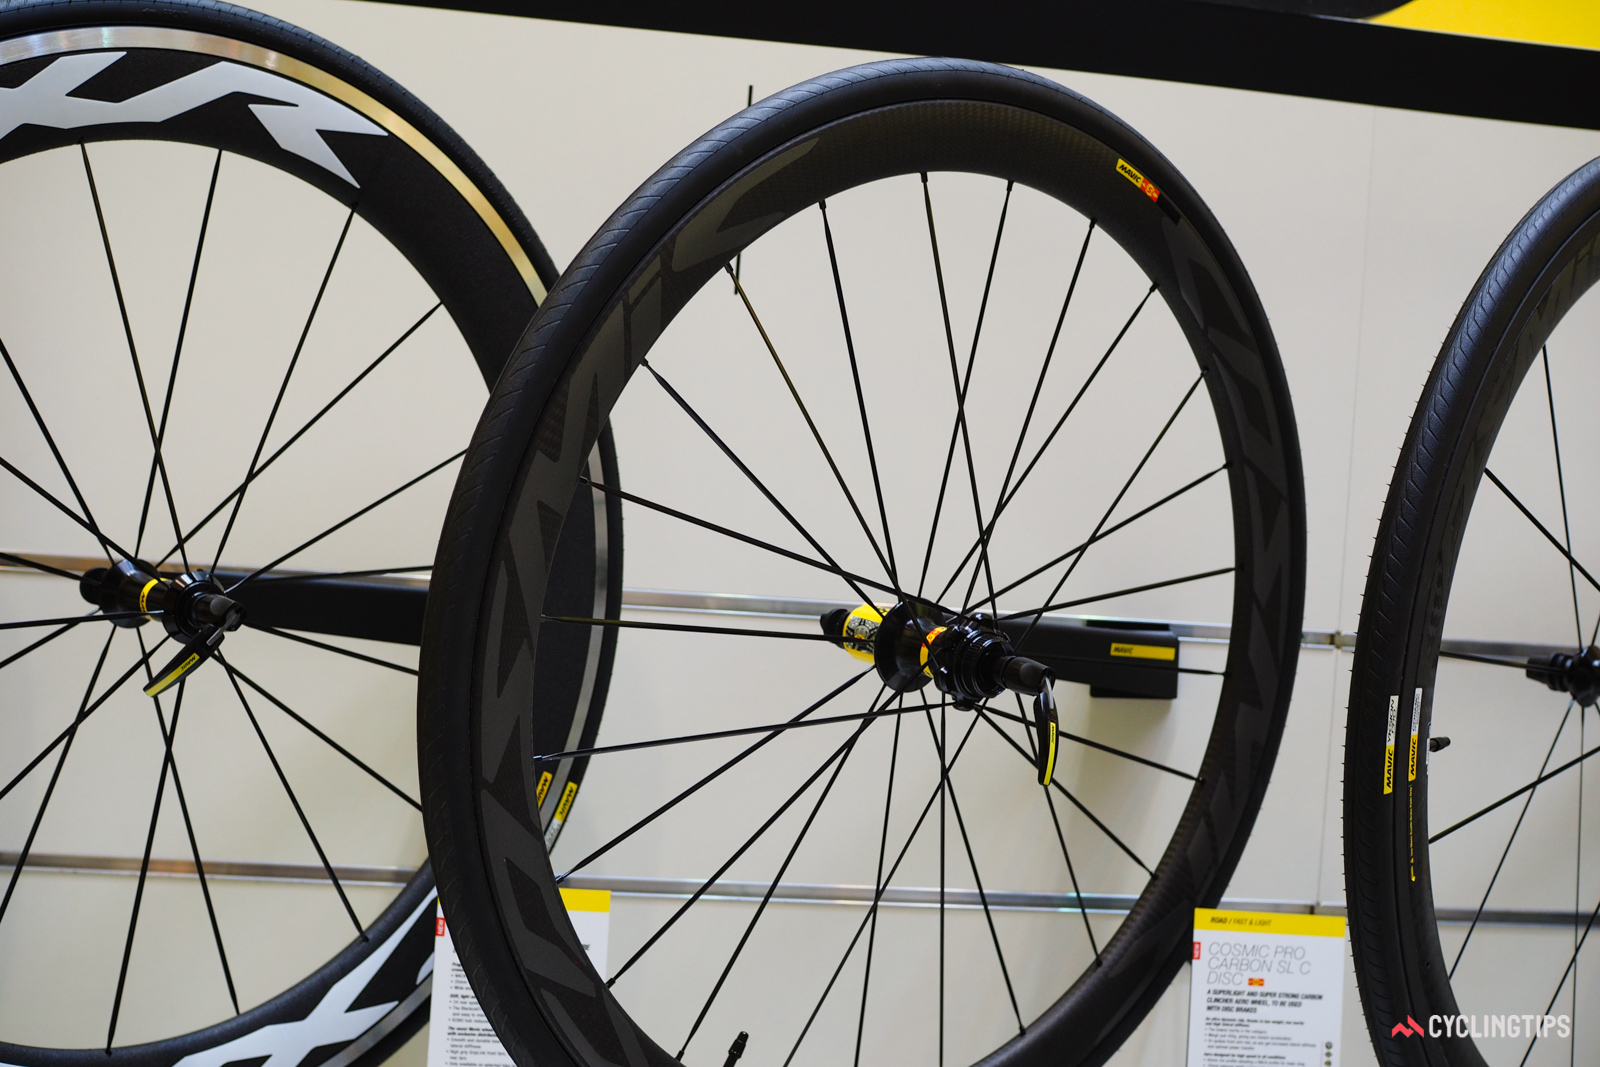 Mavic has widened much of its range for 2017, but models aimed strictly for pavement use such as the new Cosmic Pro Carbon SL C Disc still stick to a moderate 17mm internal rim width.